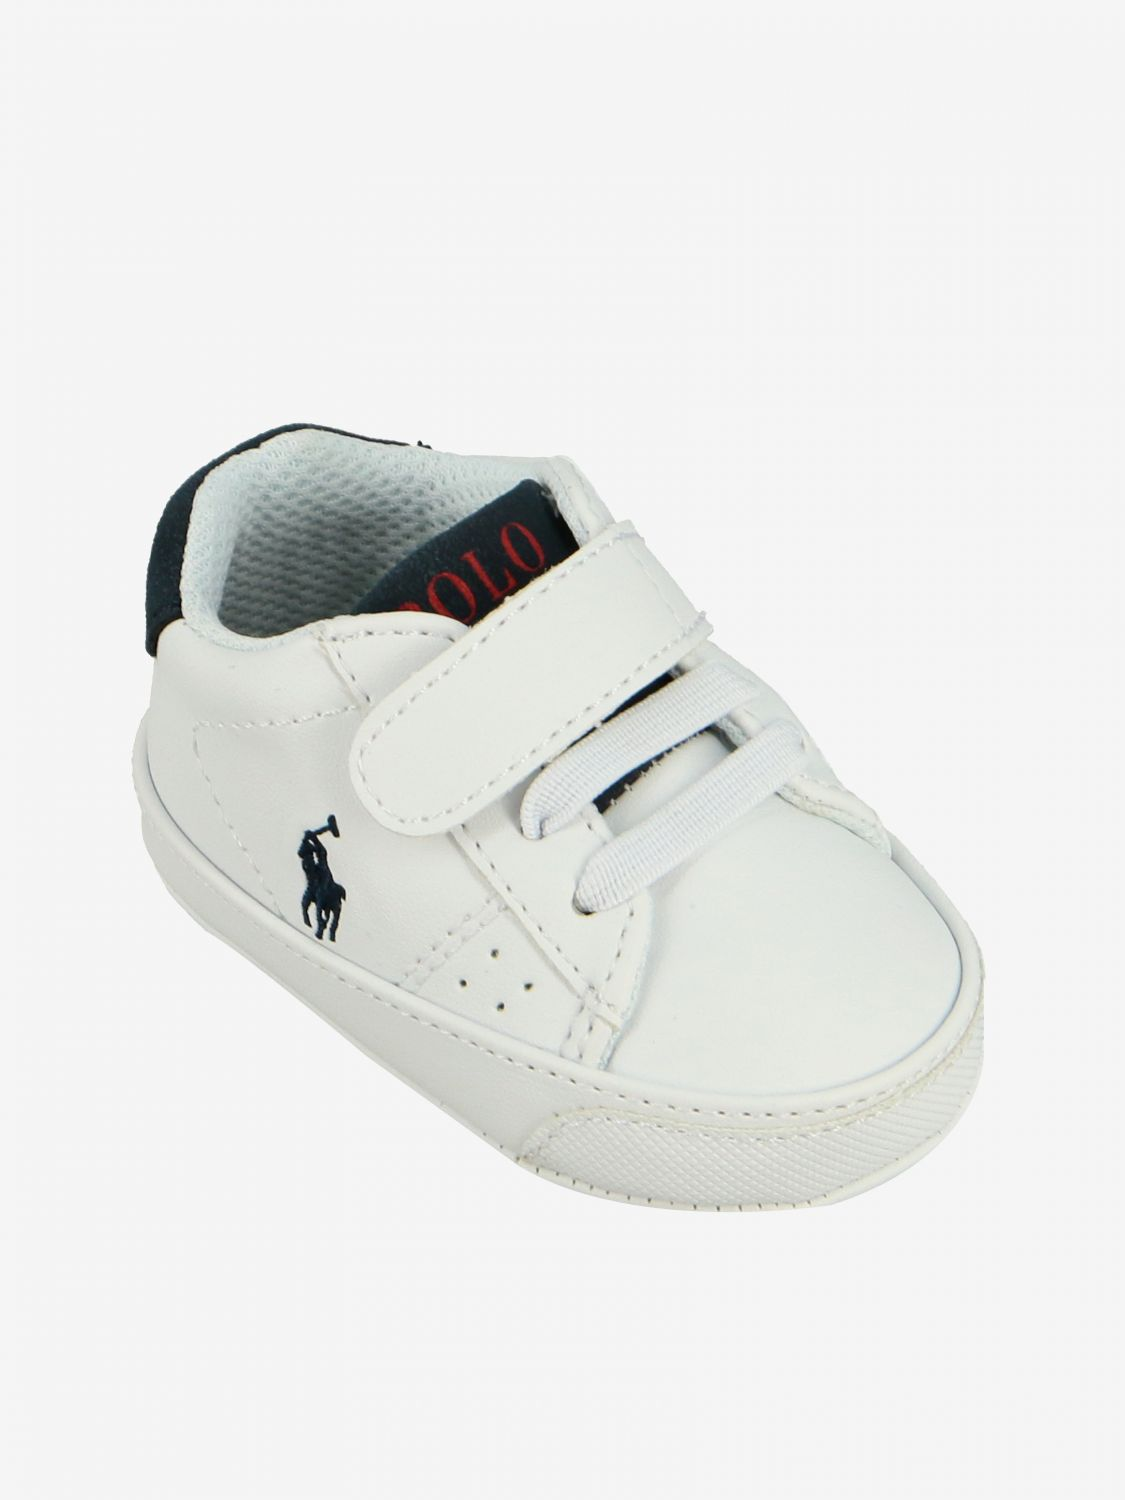 Shoes kids Polo Ralph Lauren white 4